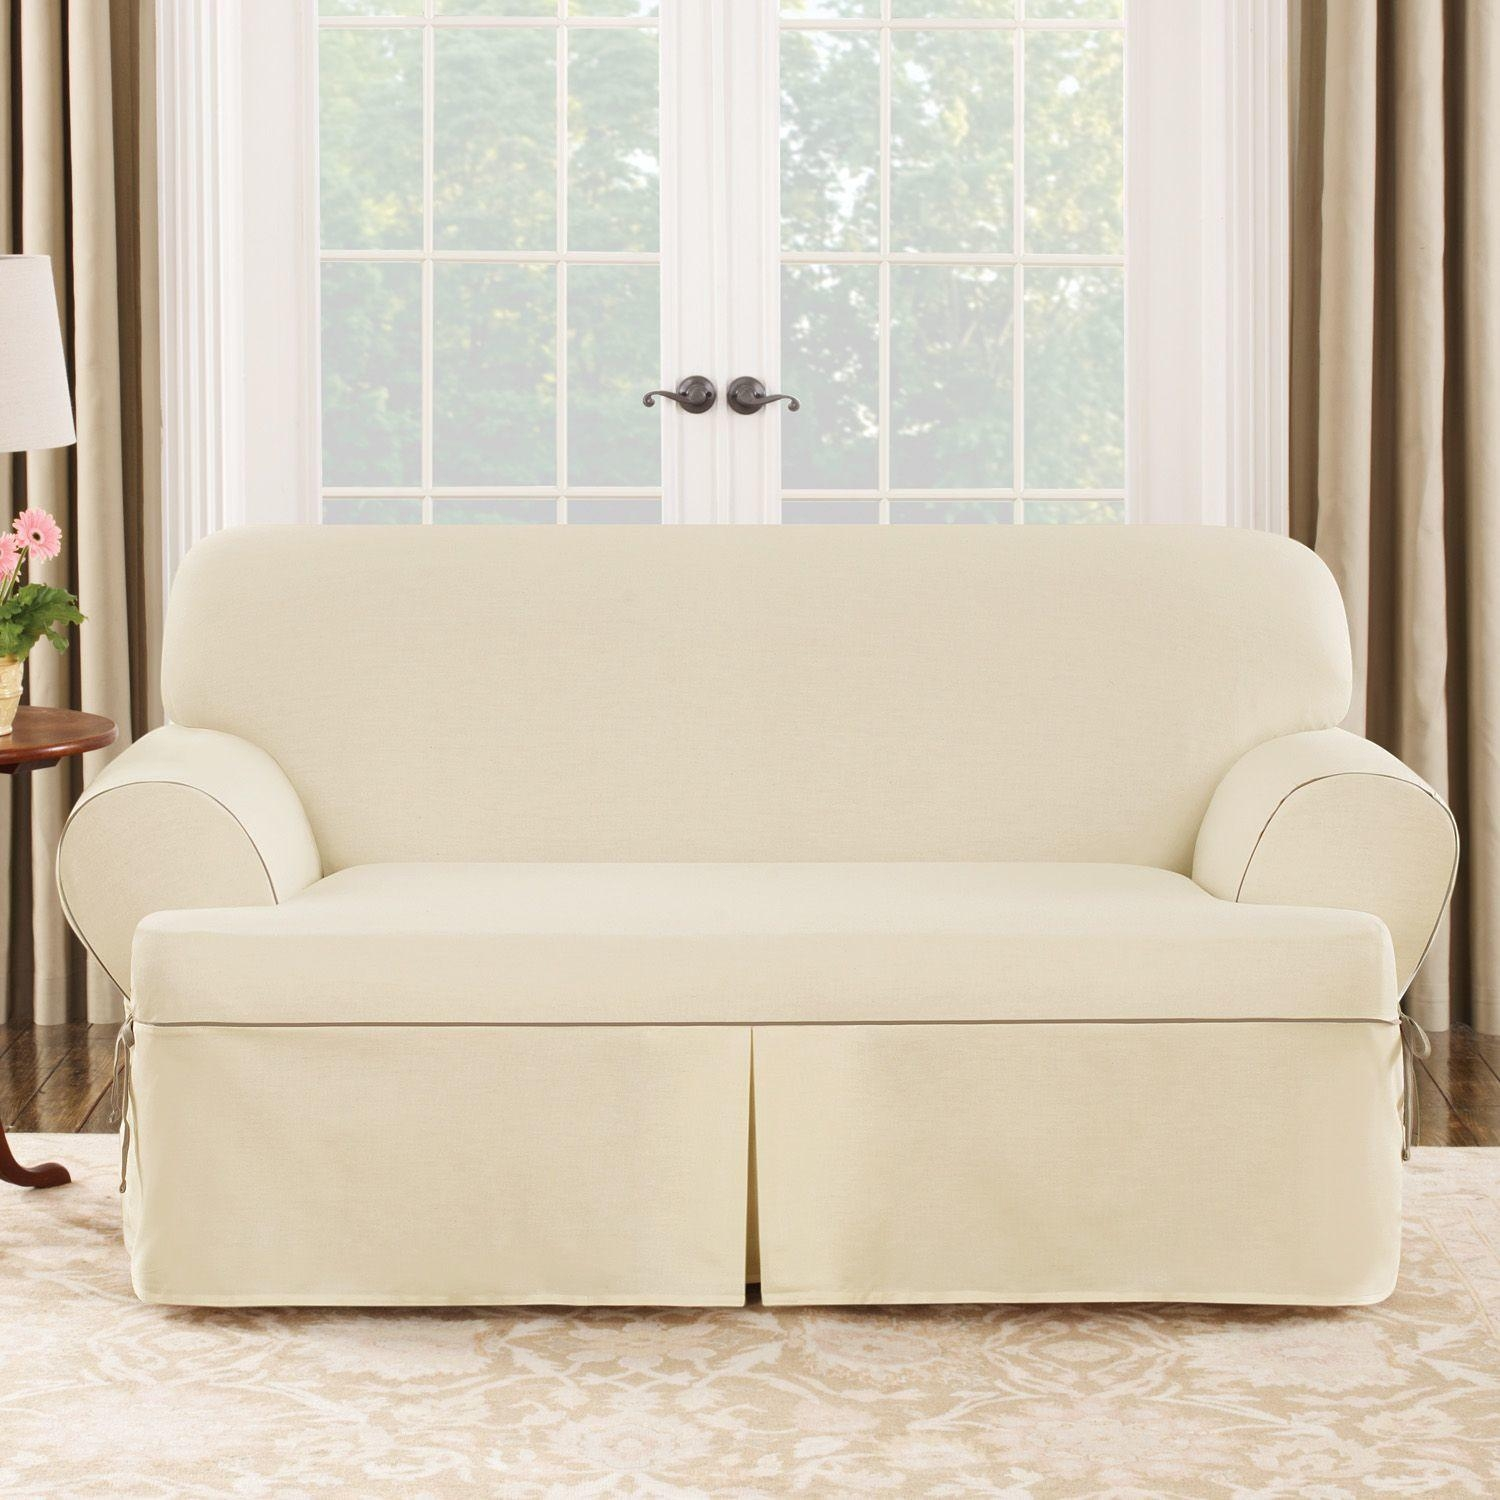 Furniture & Sofa: Stunning Sure Fit Sofa Covers Design For With Regard To Loveseat Slipcovers T Cushion (View 15 of 20)